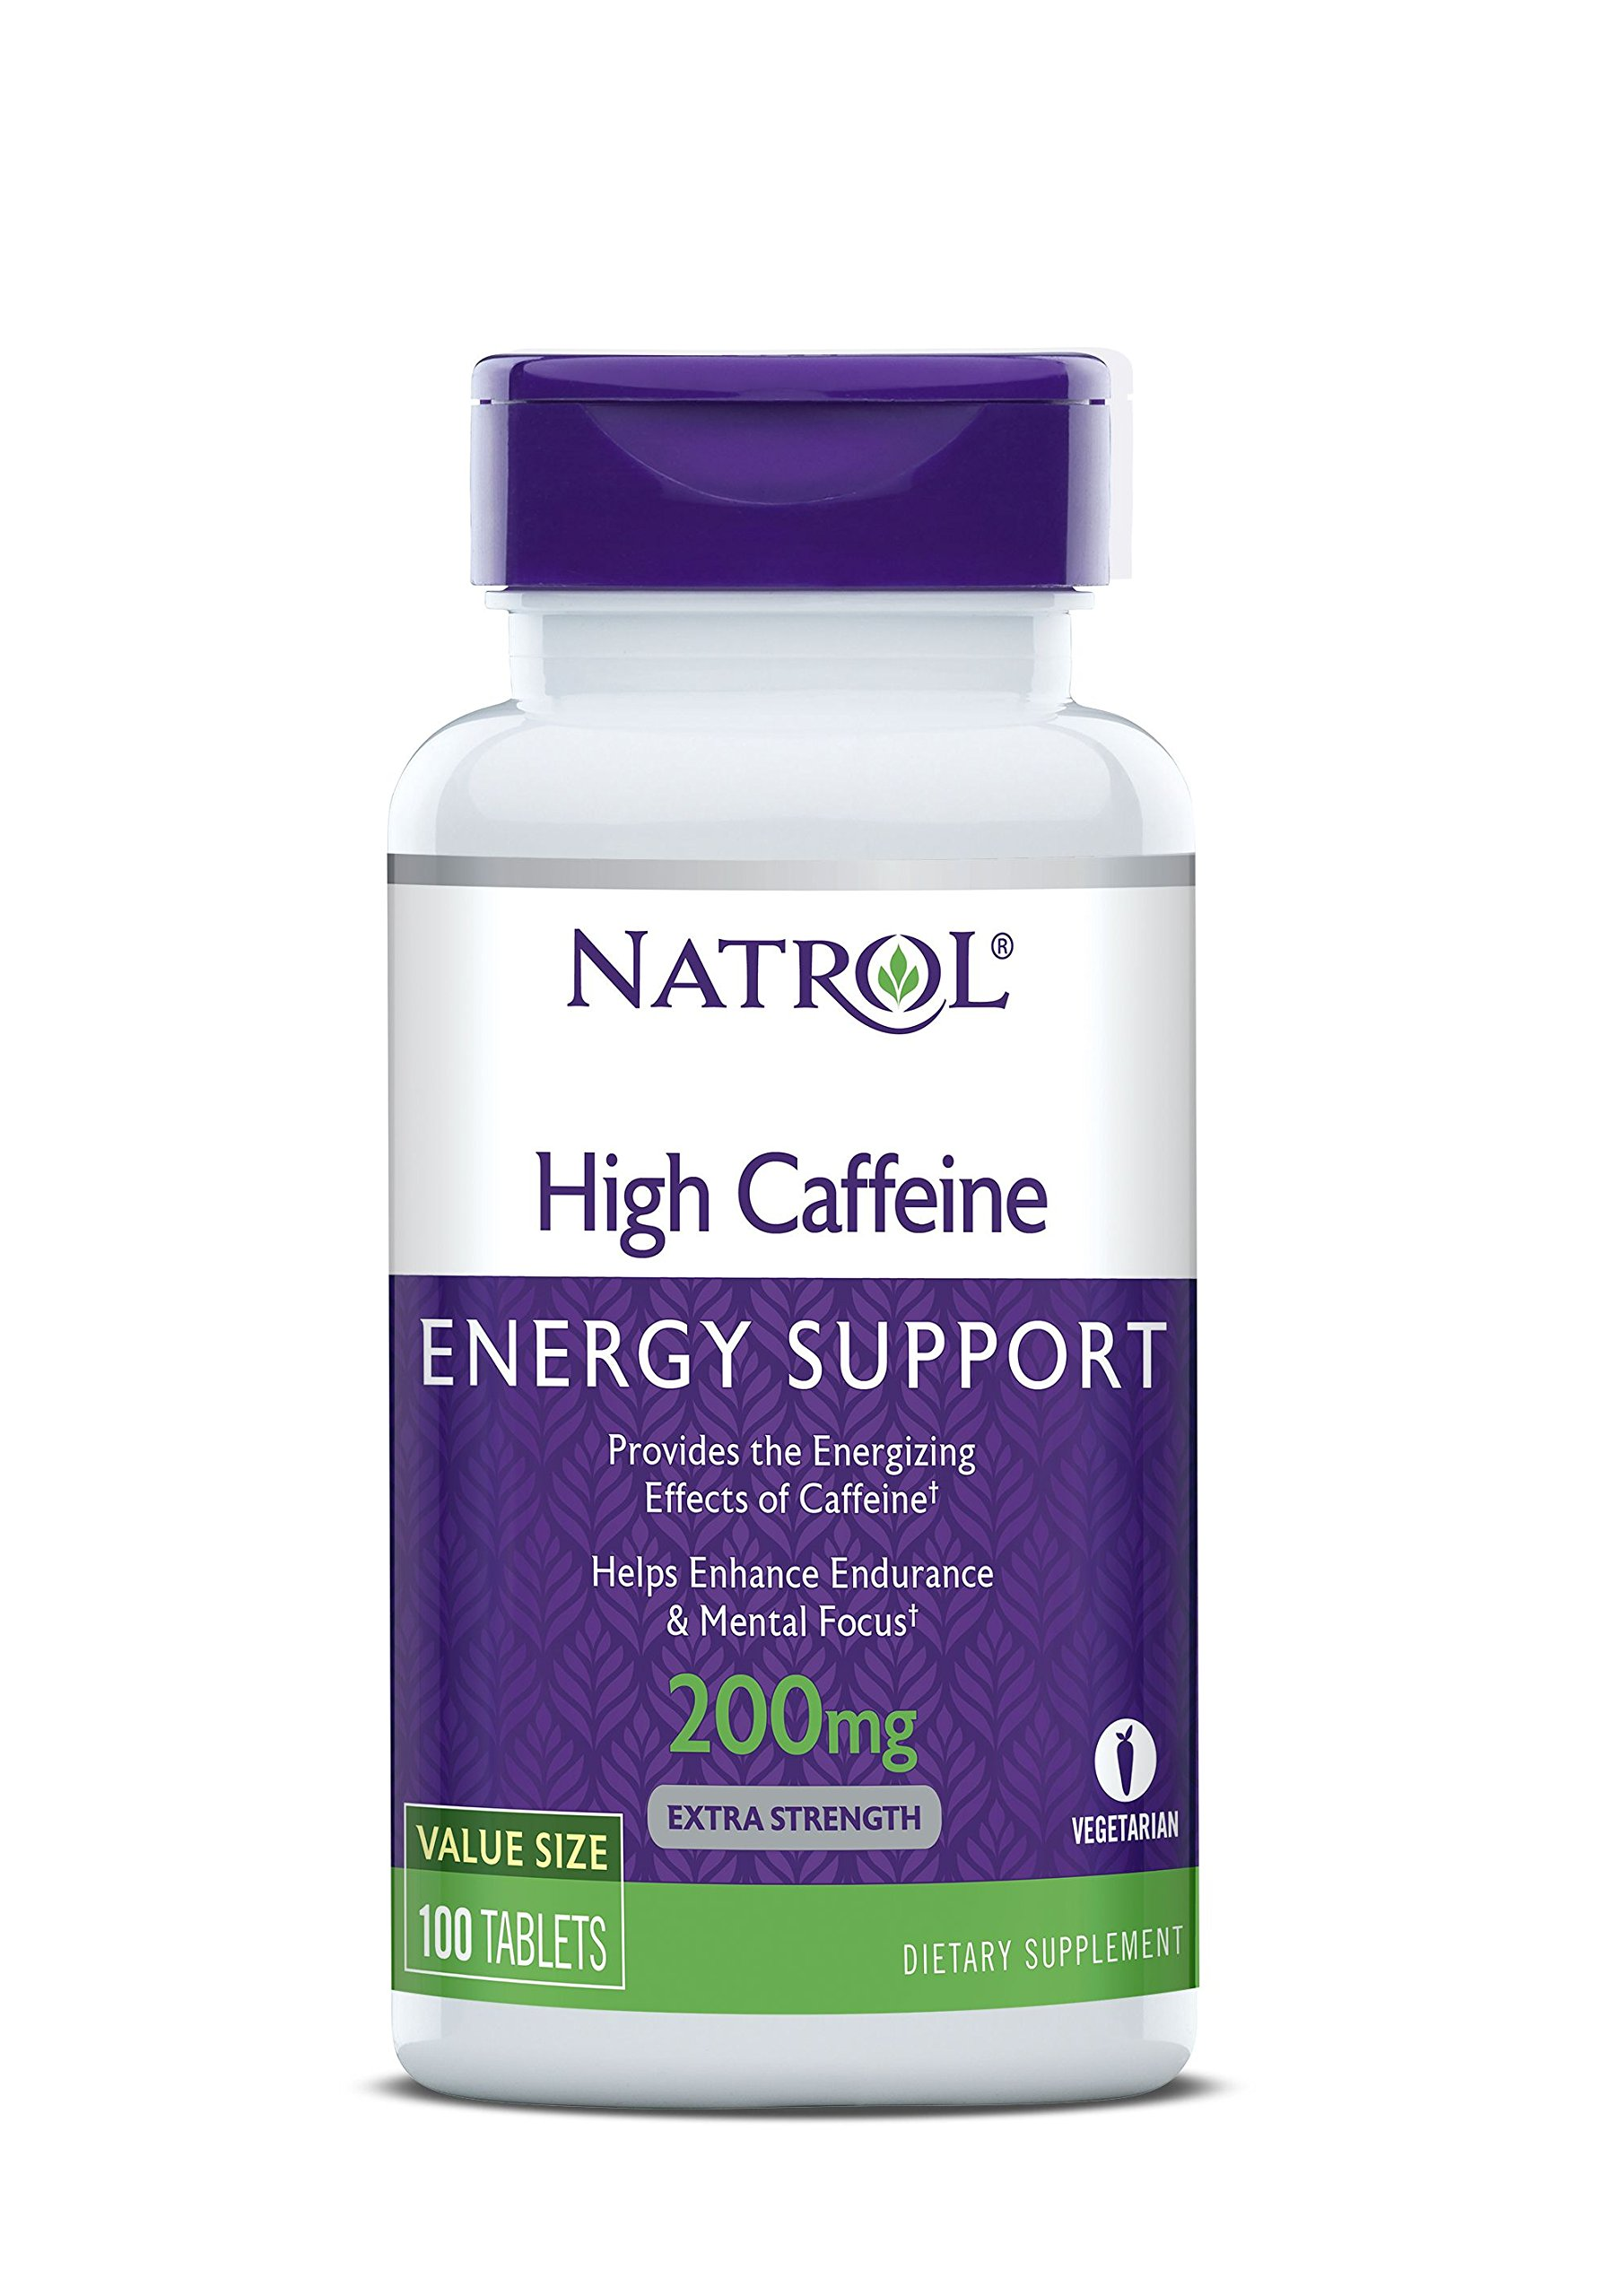 Natrol High Caffeine Tablets, Energy Support, Helps Enhance Endurance and Mental Focus, Caffeine Supplement, Fatigue, Pre-Workout, Extra Strength, 200mg, Unflavored, 100.0 Count